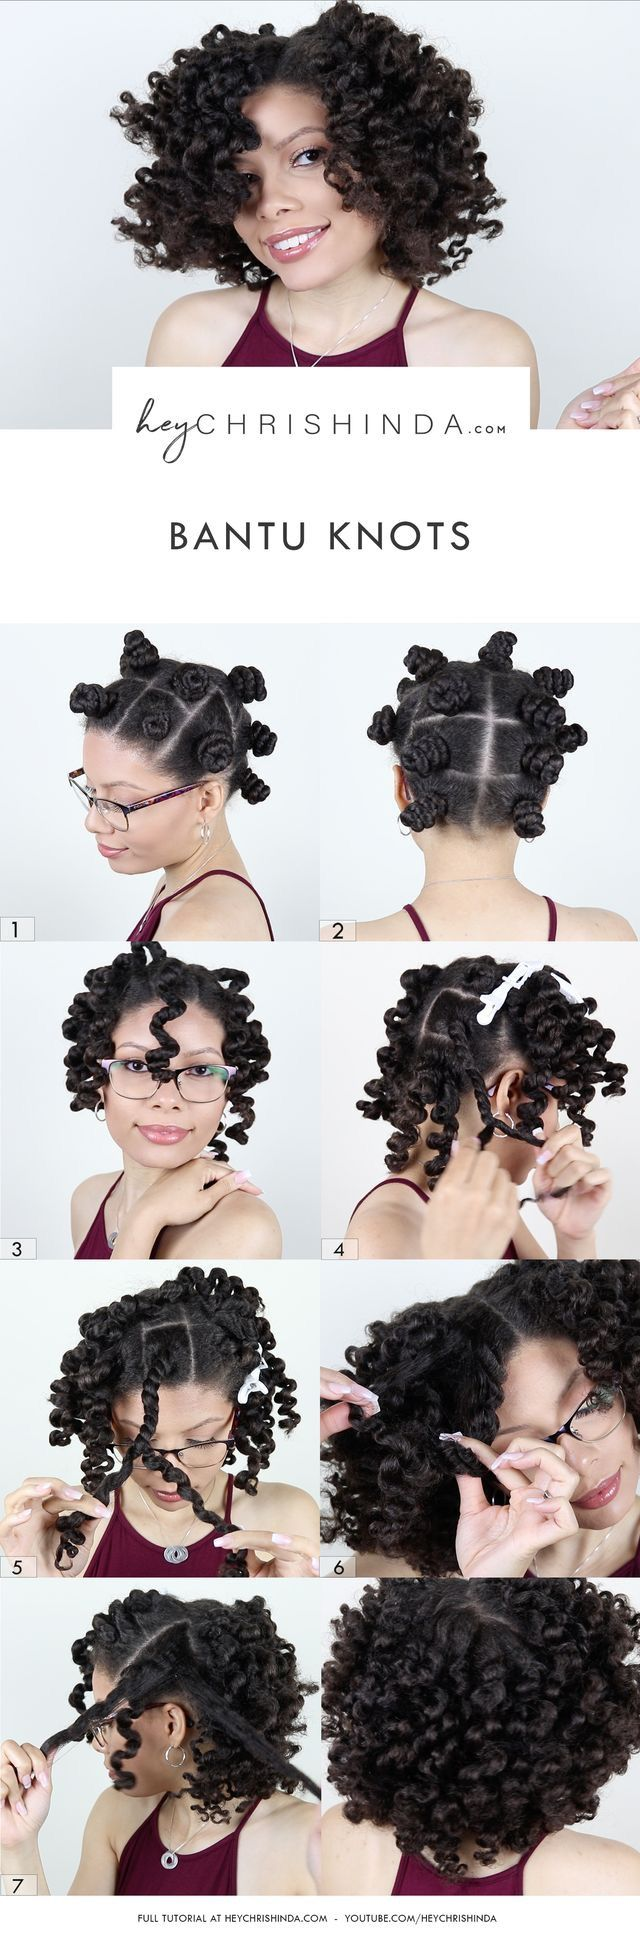 Easy Diy Natural Hair Styles African Fashion And Lifestyles Natural Hair Styles Natural Hair Diy Diy Natural Hair Styles